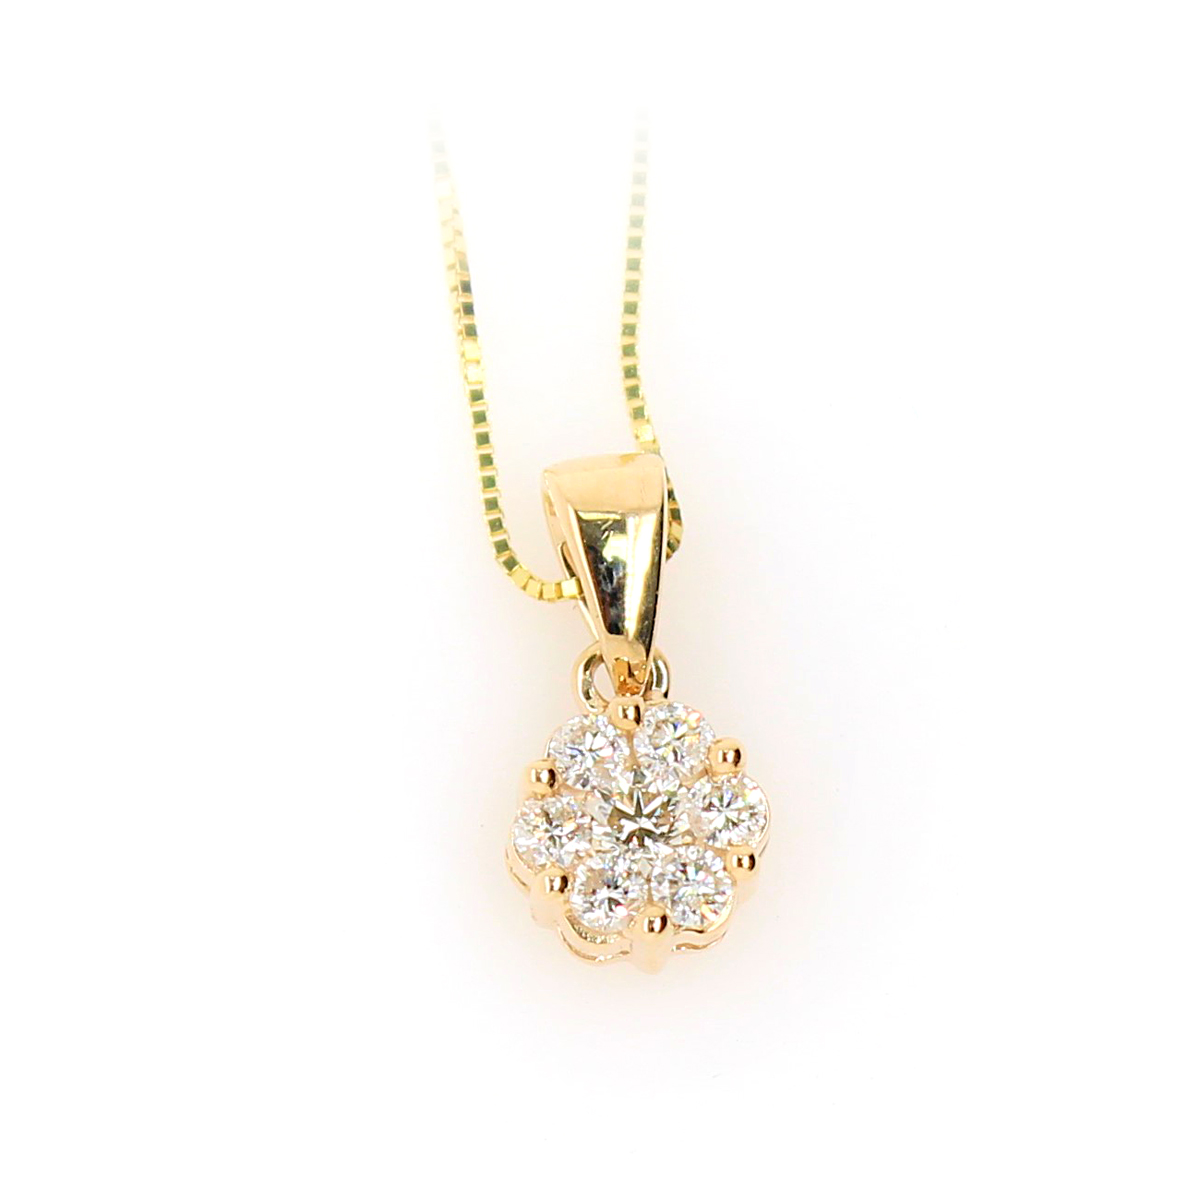 Shefi Diamonds 10 Yellow White Gold Cluster Diamond Pendant Necklace